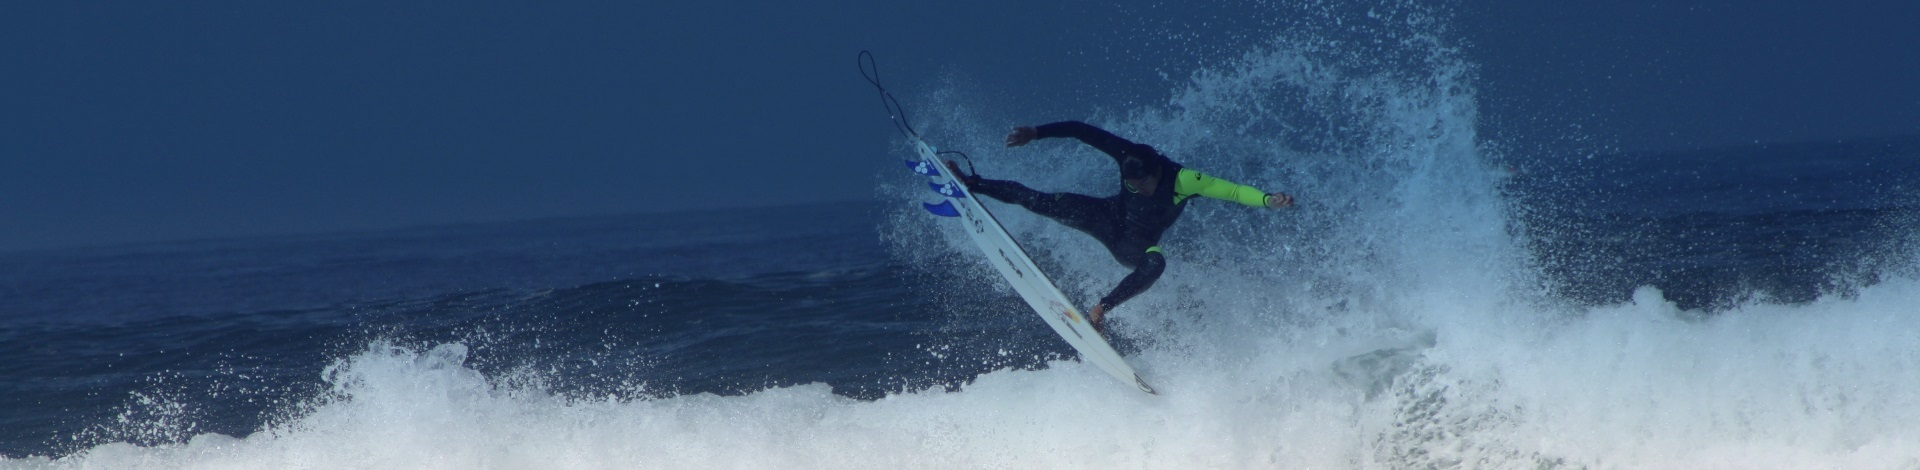 IMPROVE YOUR SURFING